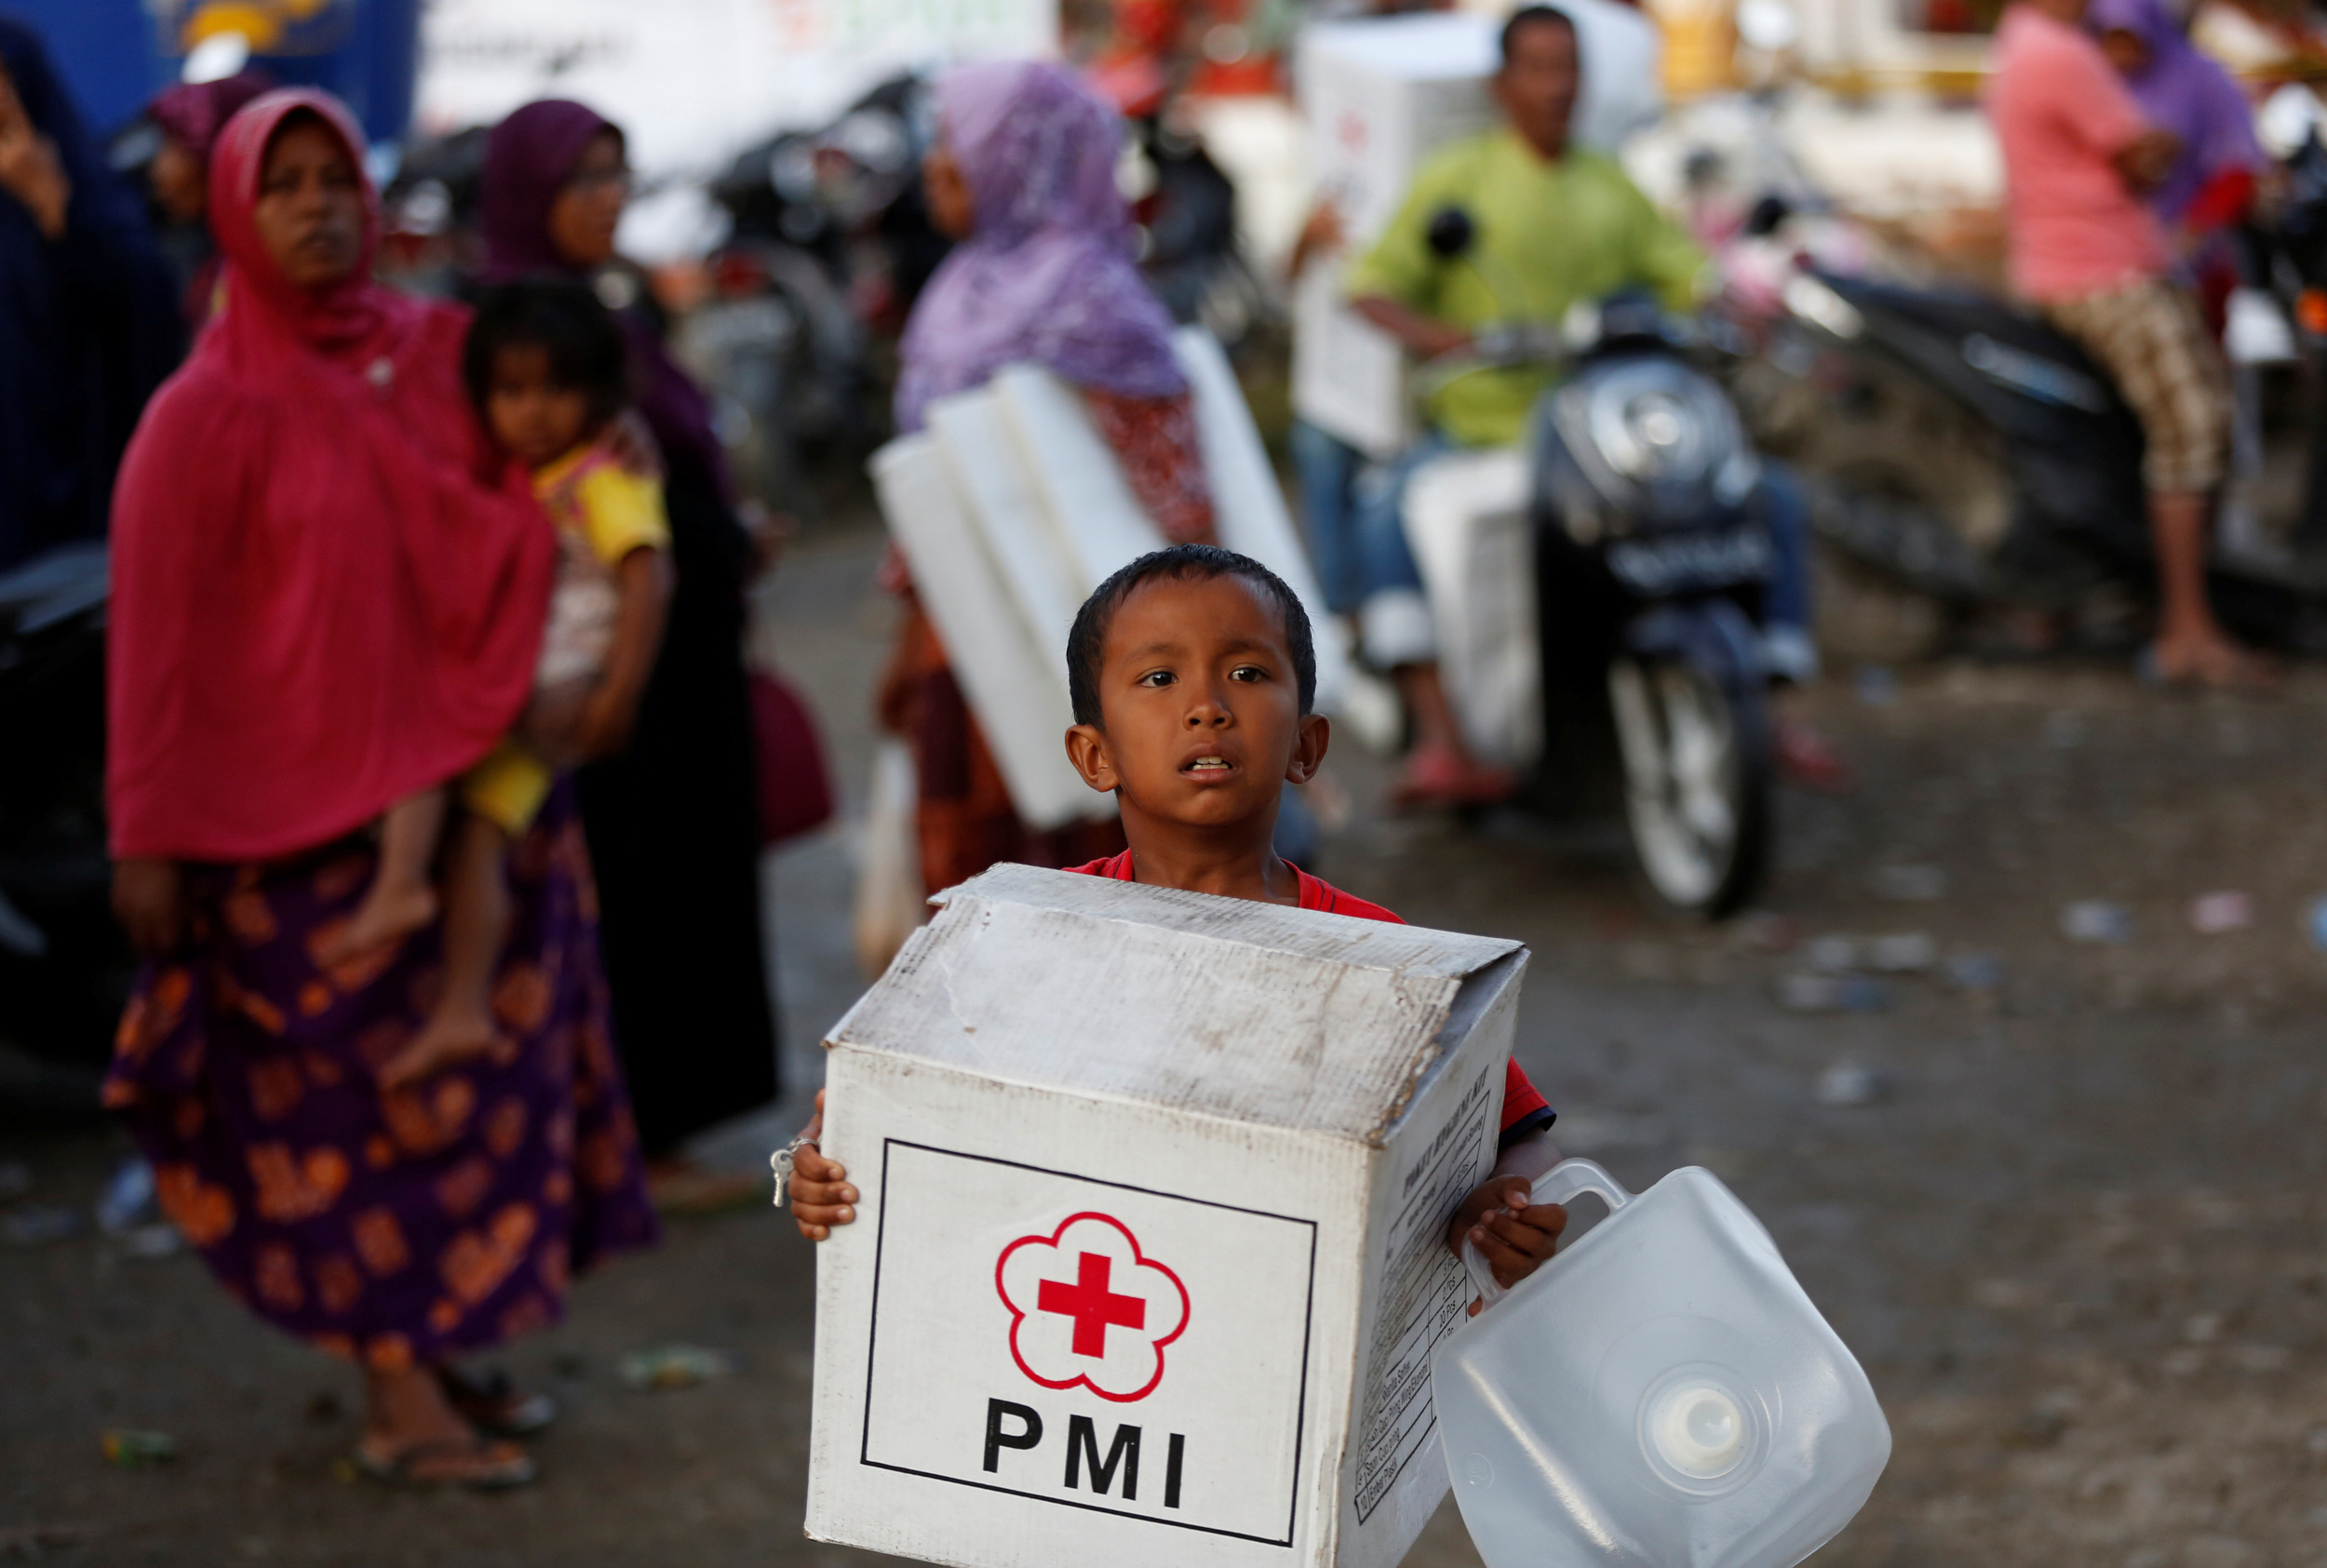 A boy carrying an aid package leaves a temporary shelter at a mosque following this week's strong earthquake in Meureudu, Pidie Jaya, Aceh province, Indonesia December 10, 2016. Photo By Darren Whiteside/Reuters